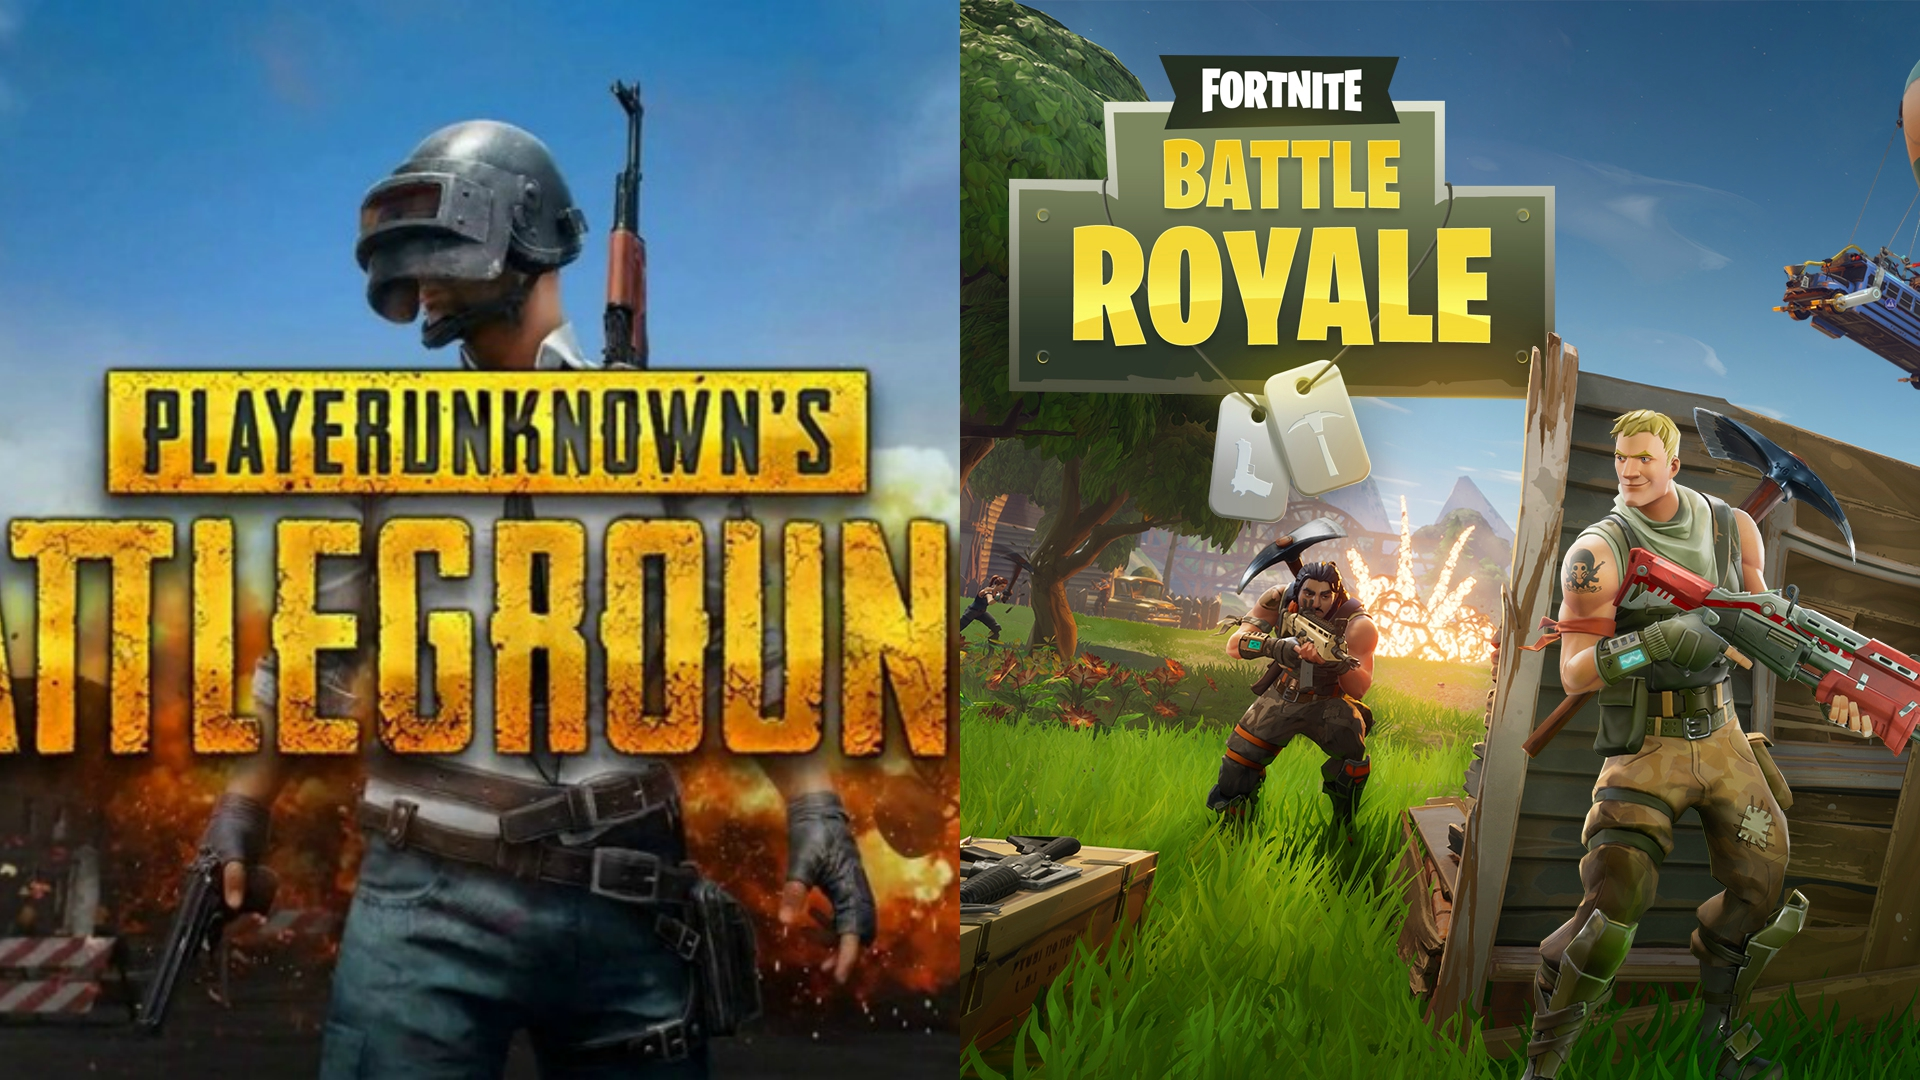 Battle Royale - What the hell is a battle royale? This episode will give you everything you could possible need to know about this type of game. From what is, all the way to what games we would like have this game mode added.